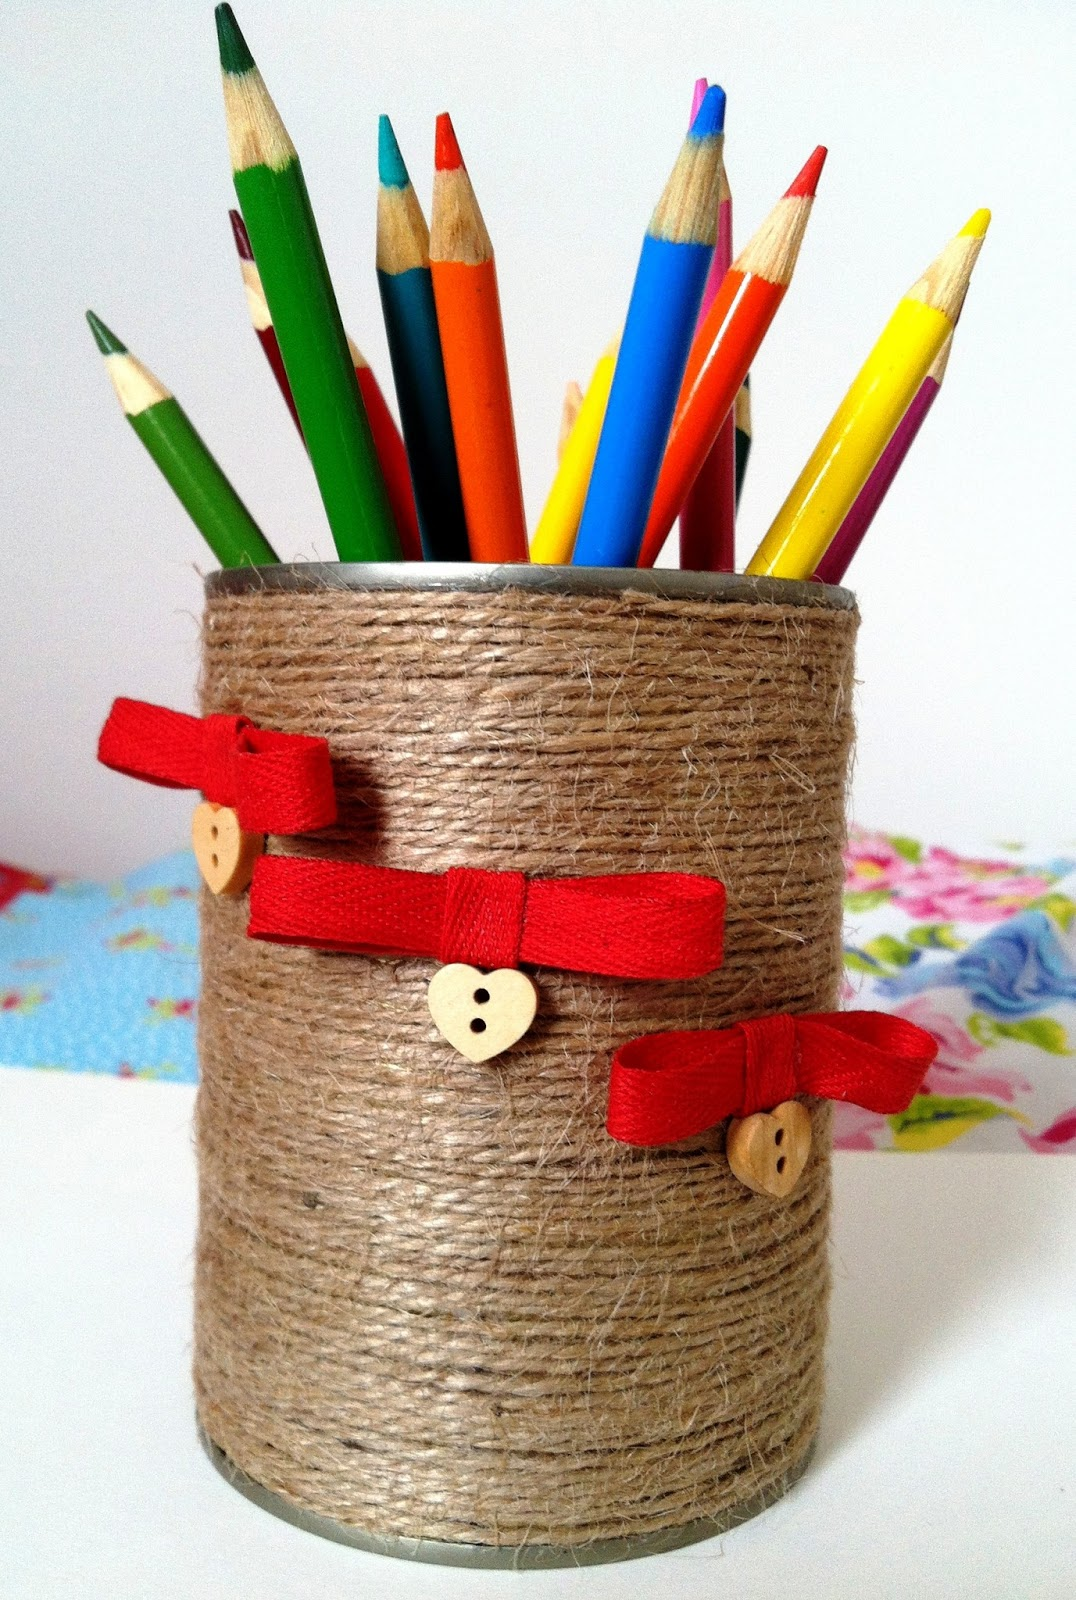 creative lab how to recycle empty cans pen pencil utensils holder. Black Bedroom Furniture Sets. Home Design Ideas